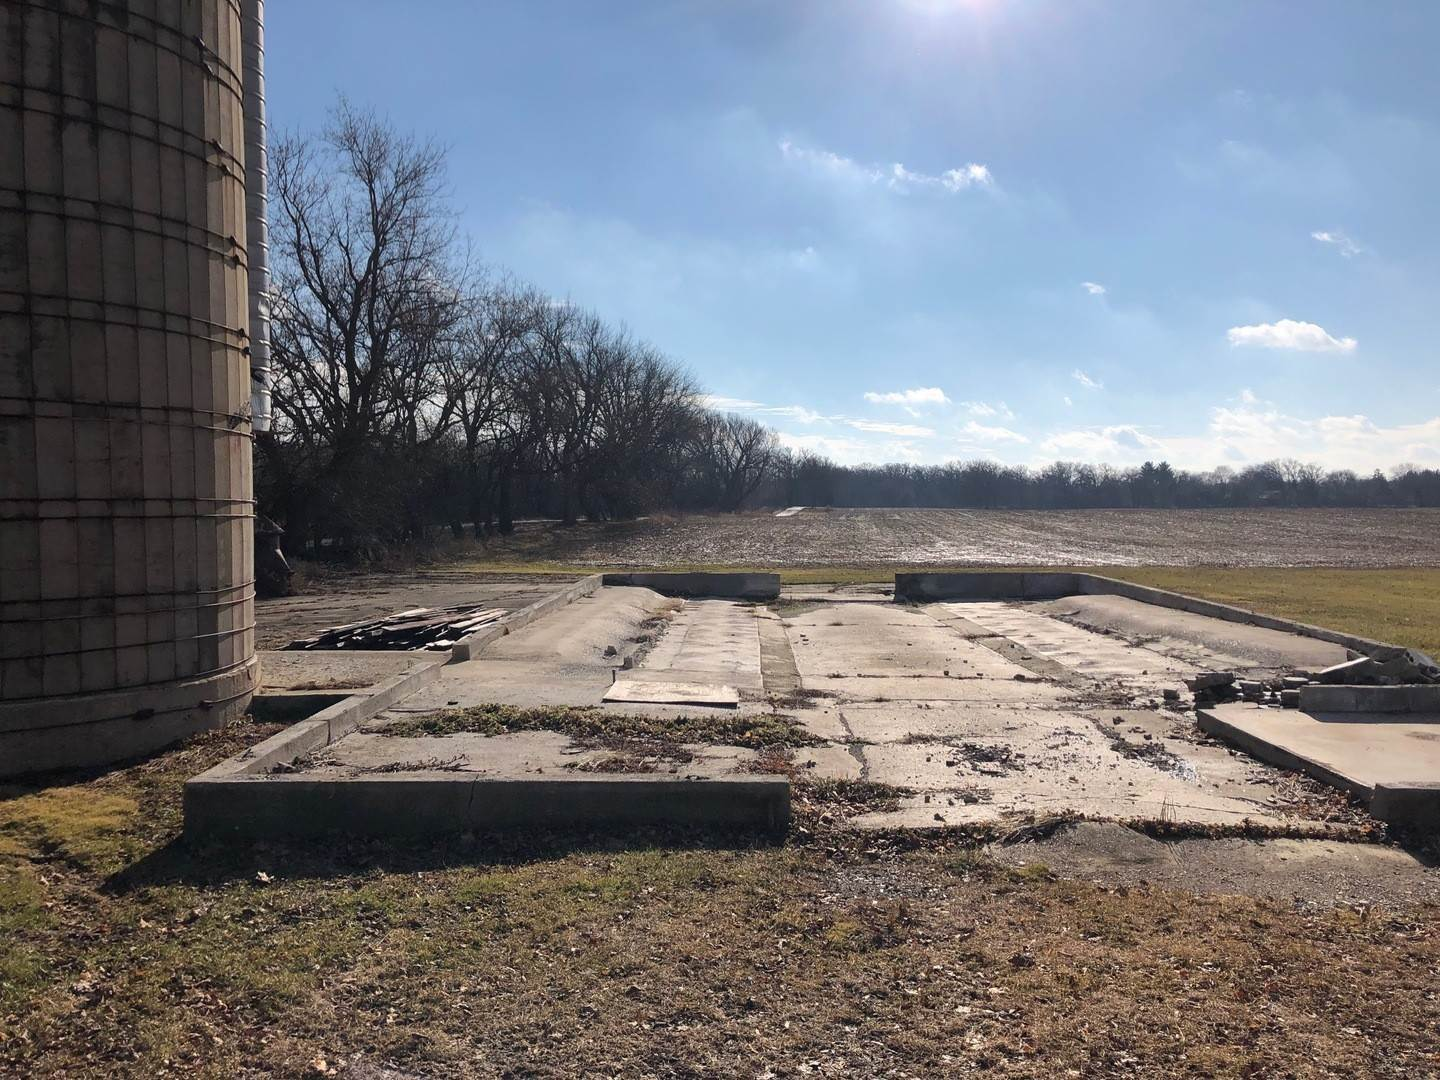 Farm for Sale at 18521 W Il Route 120 Highway Grayslake, Illinois 60030 United States